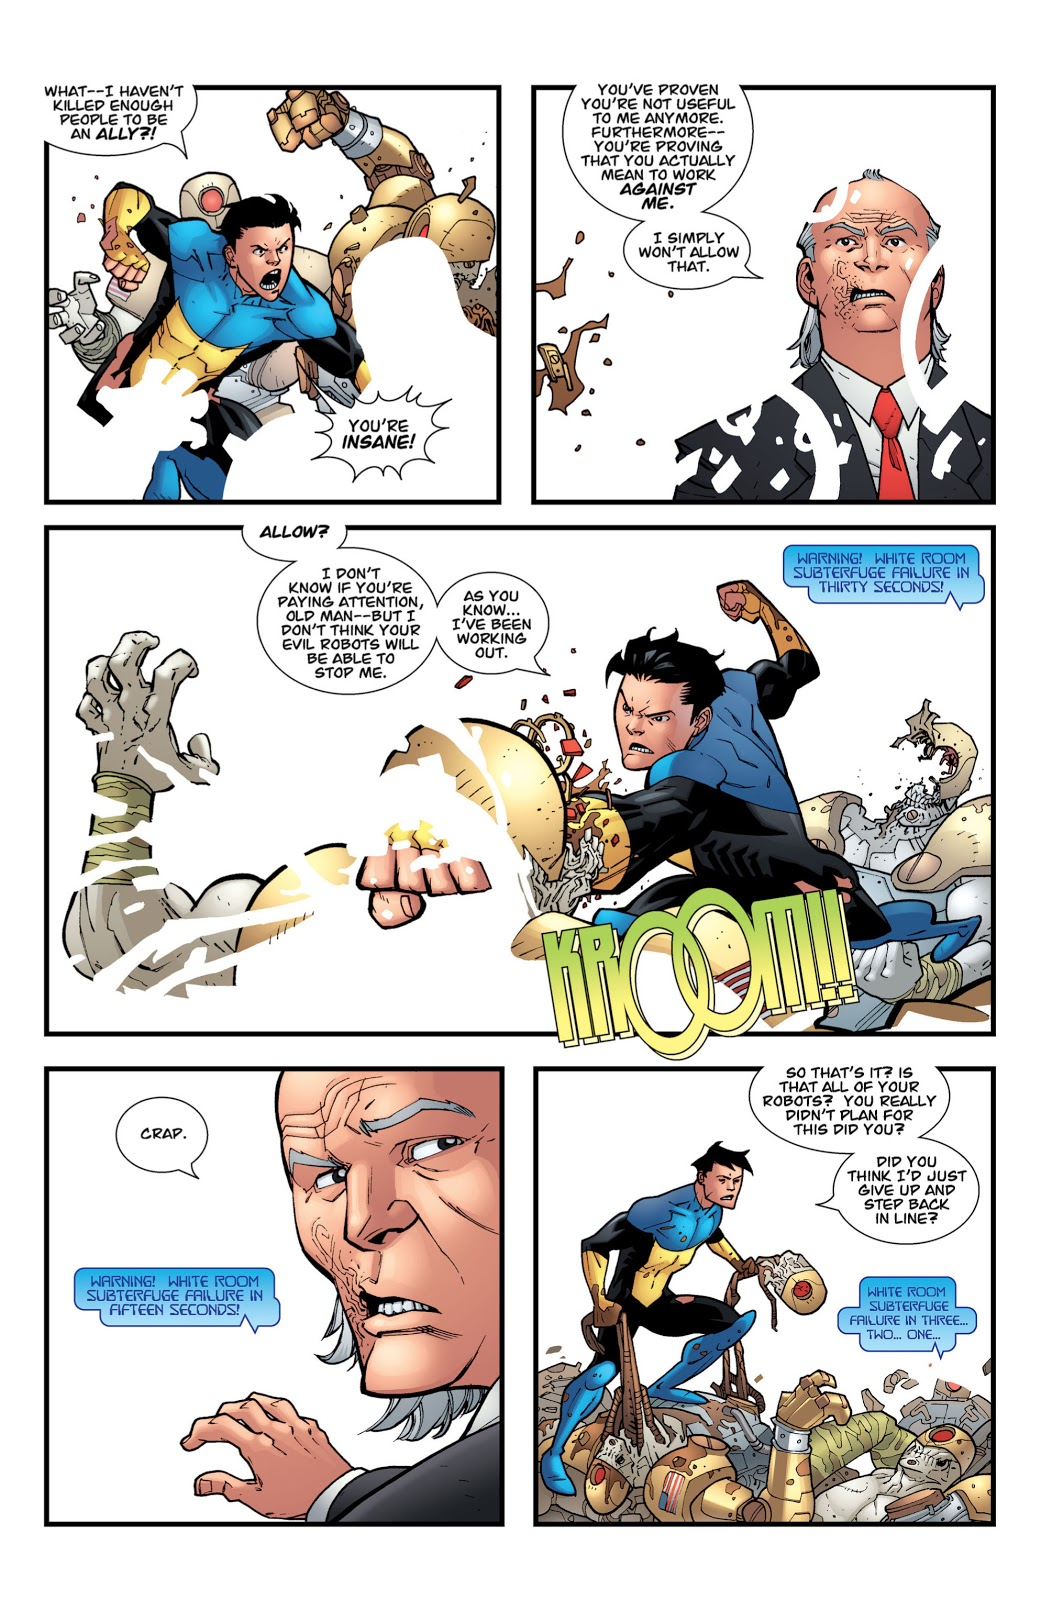 Cecil Stedman's Contingency Plan Against Invincible